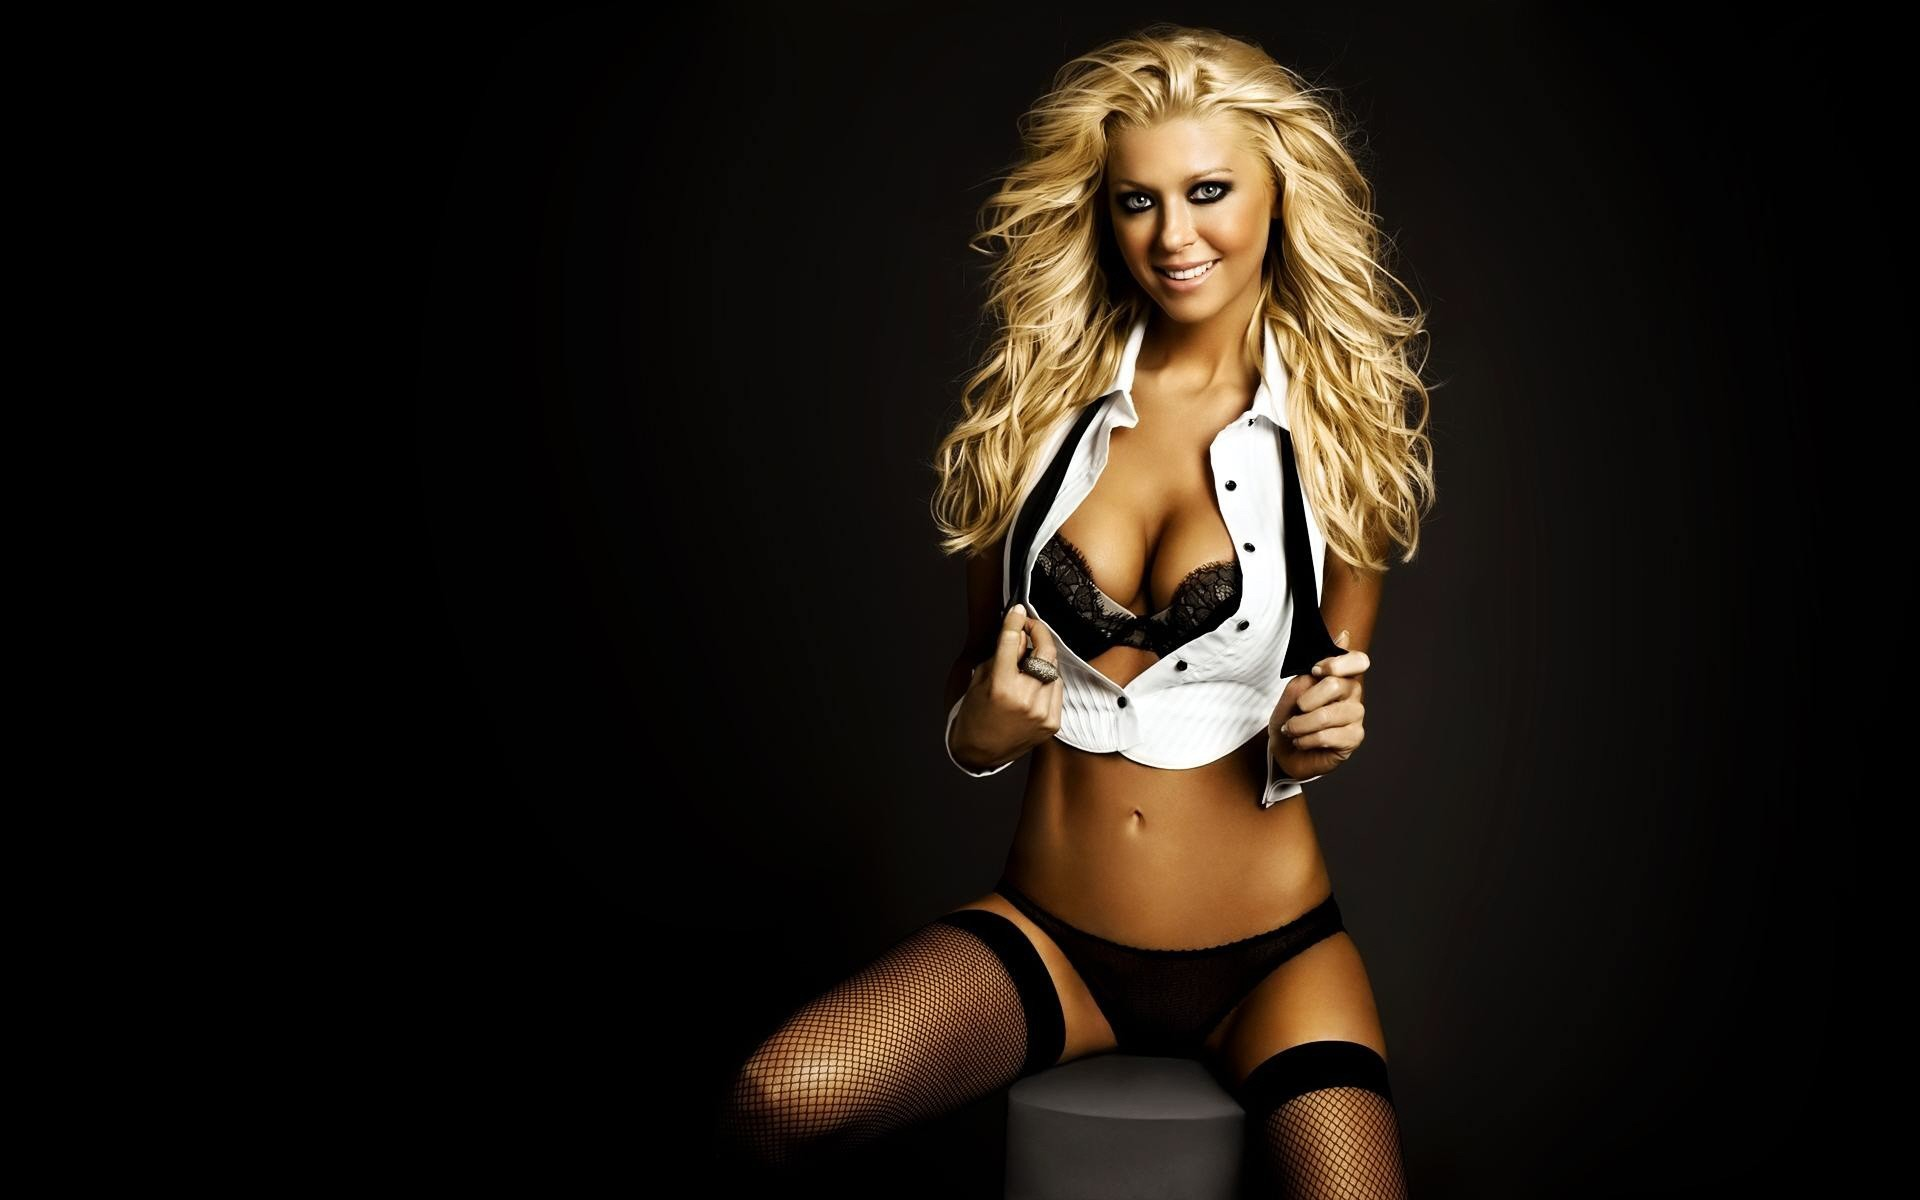 woman Tara Reid stockings blondes lingerie HD Wallpaper